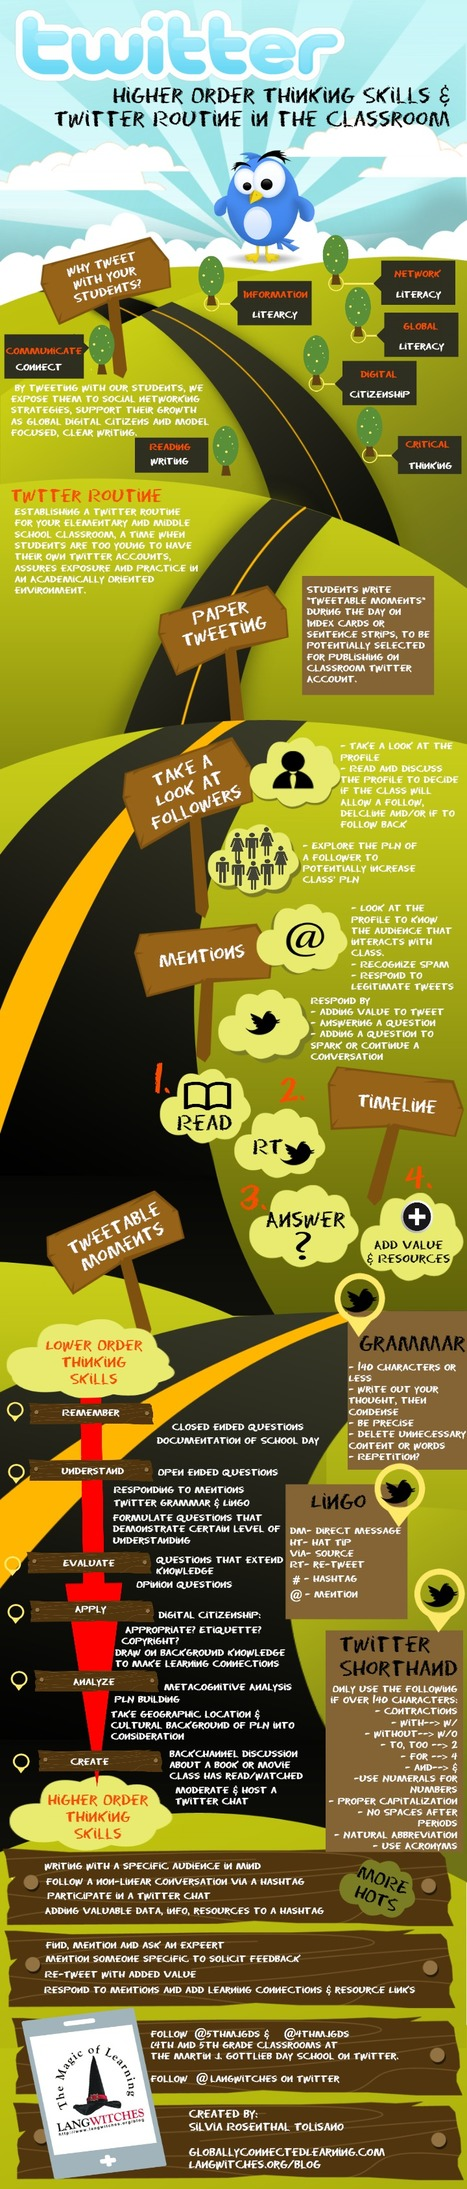 Teachers Roadmap to The Use of Twitter in Education | Wallet Digital - Social Media, Business & Technology | Scoop.it